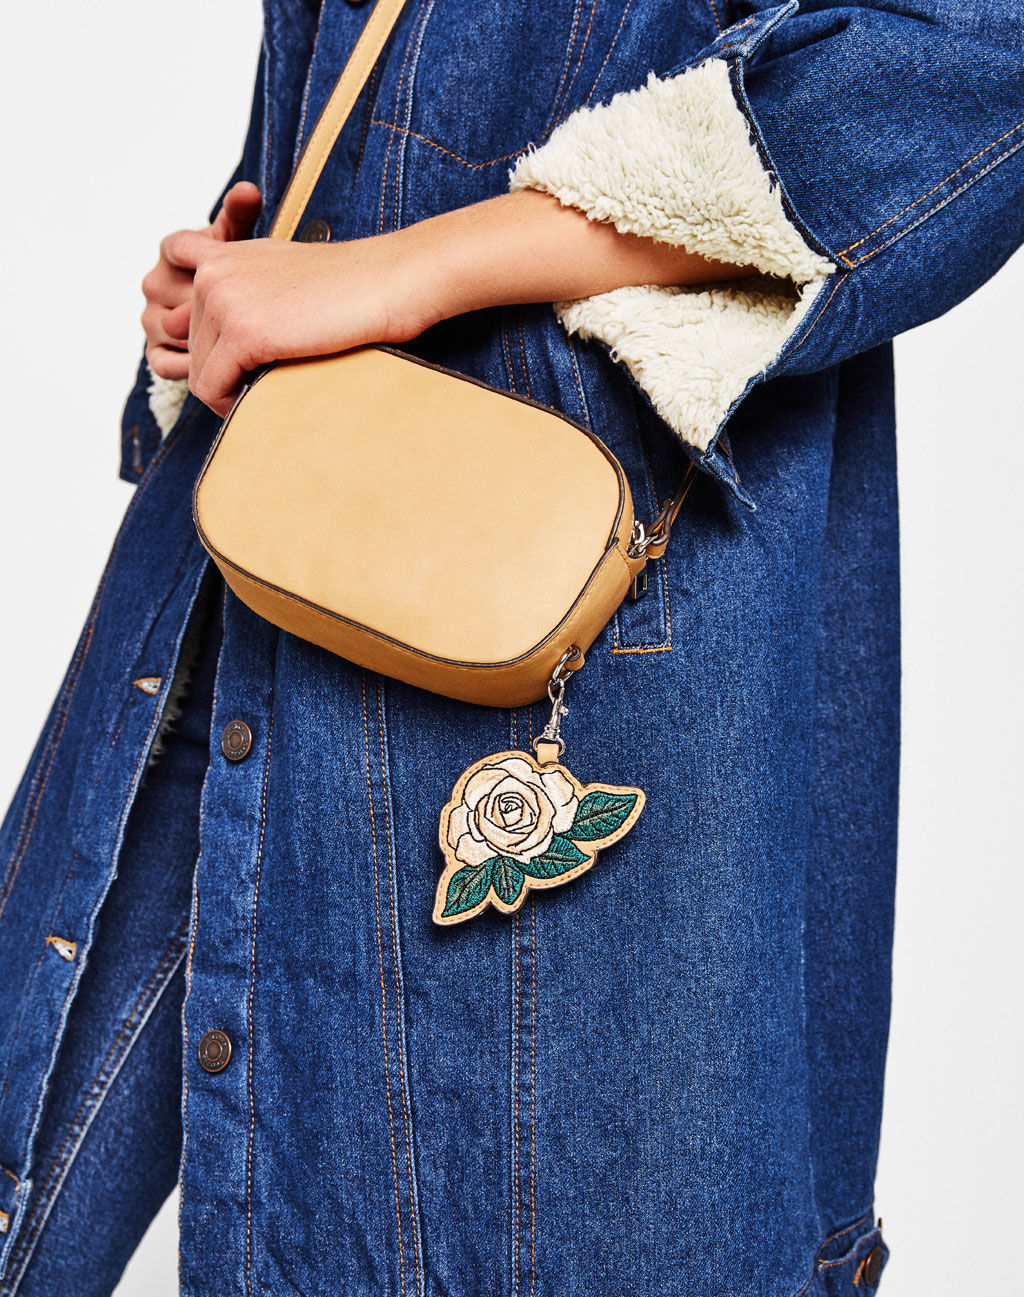 Handbag with a flower key ring